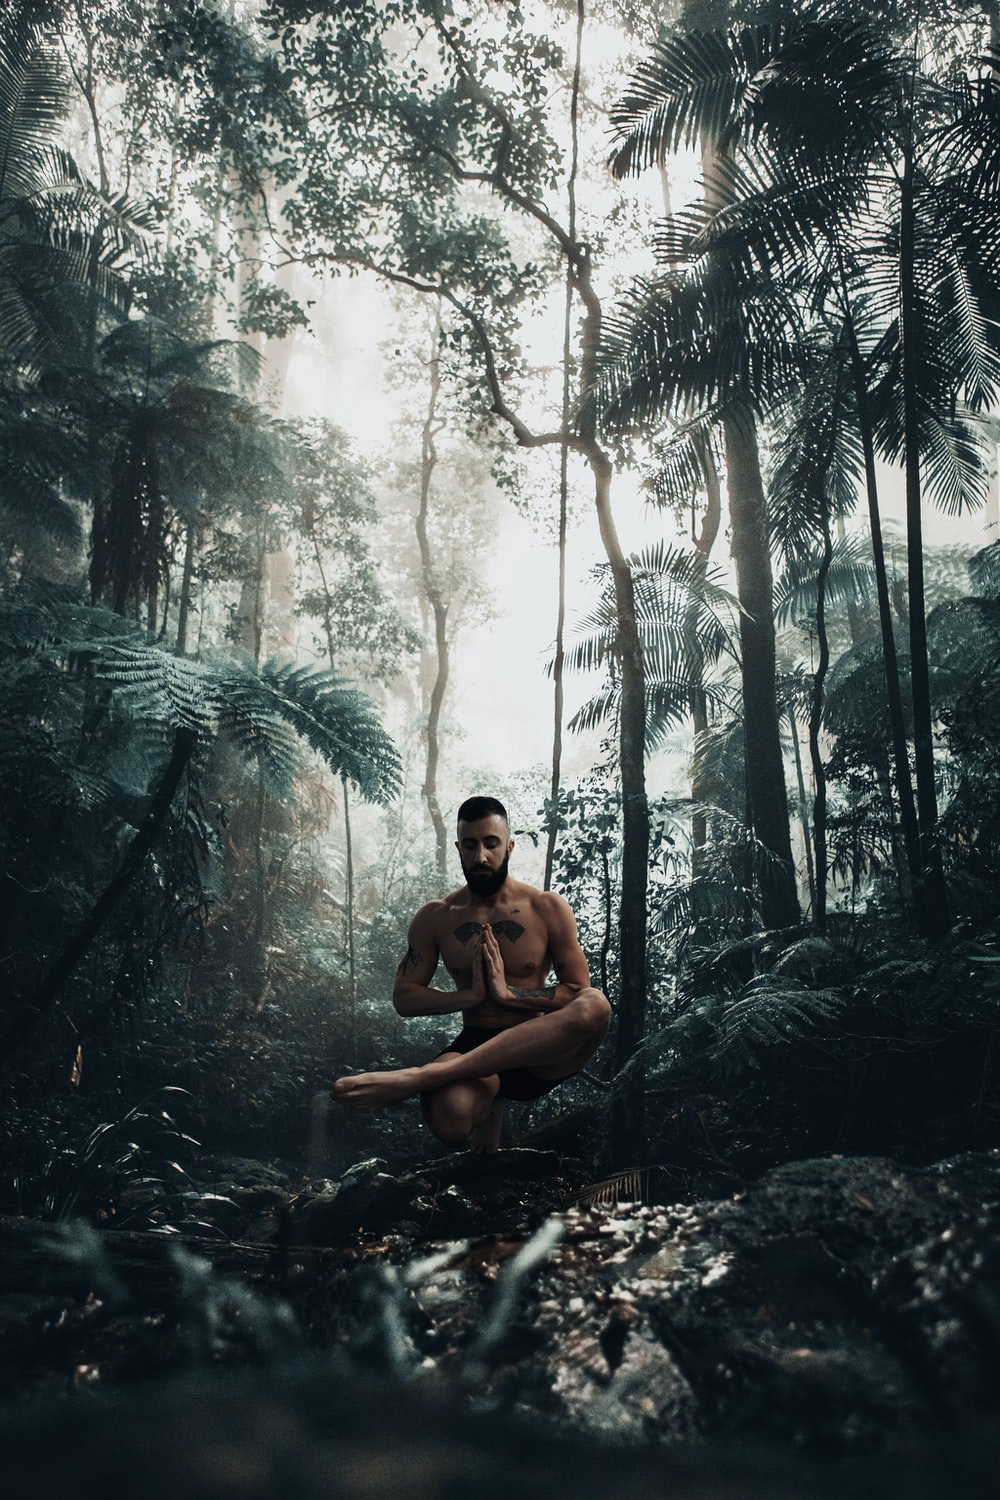 topless man sitting on rock in the middle of forest during daytime